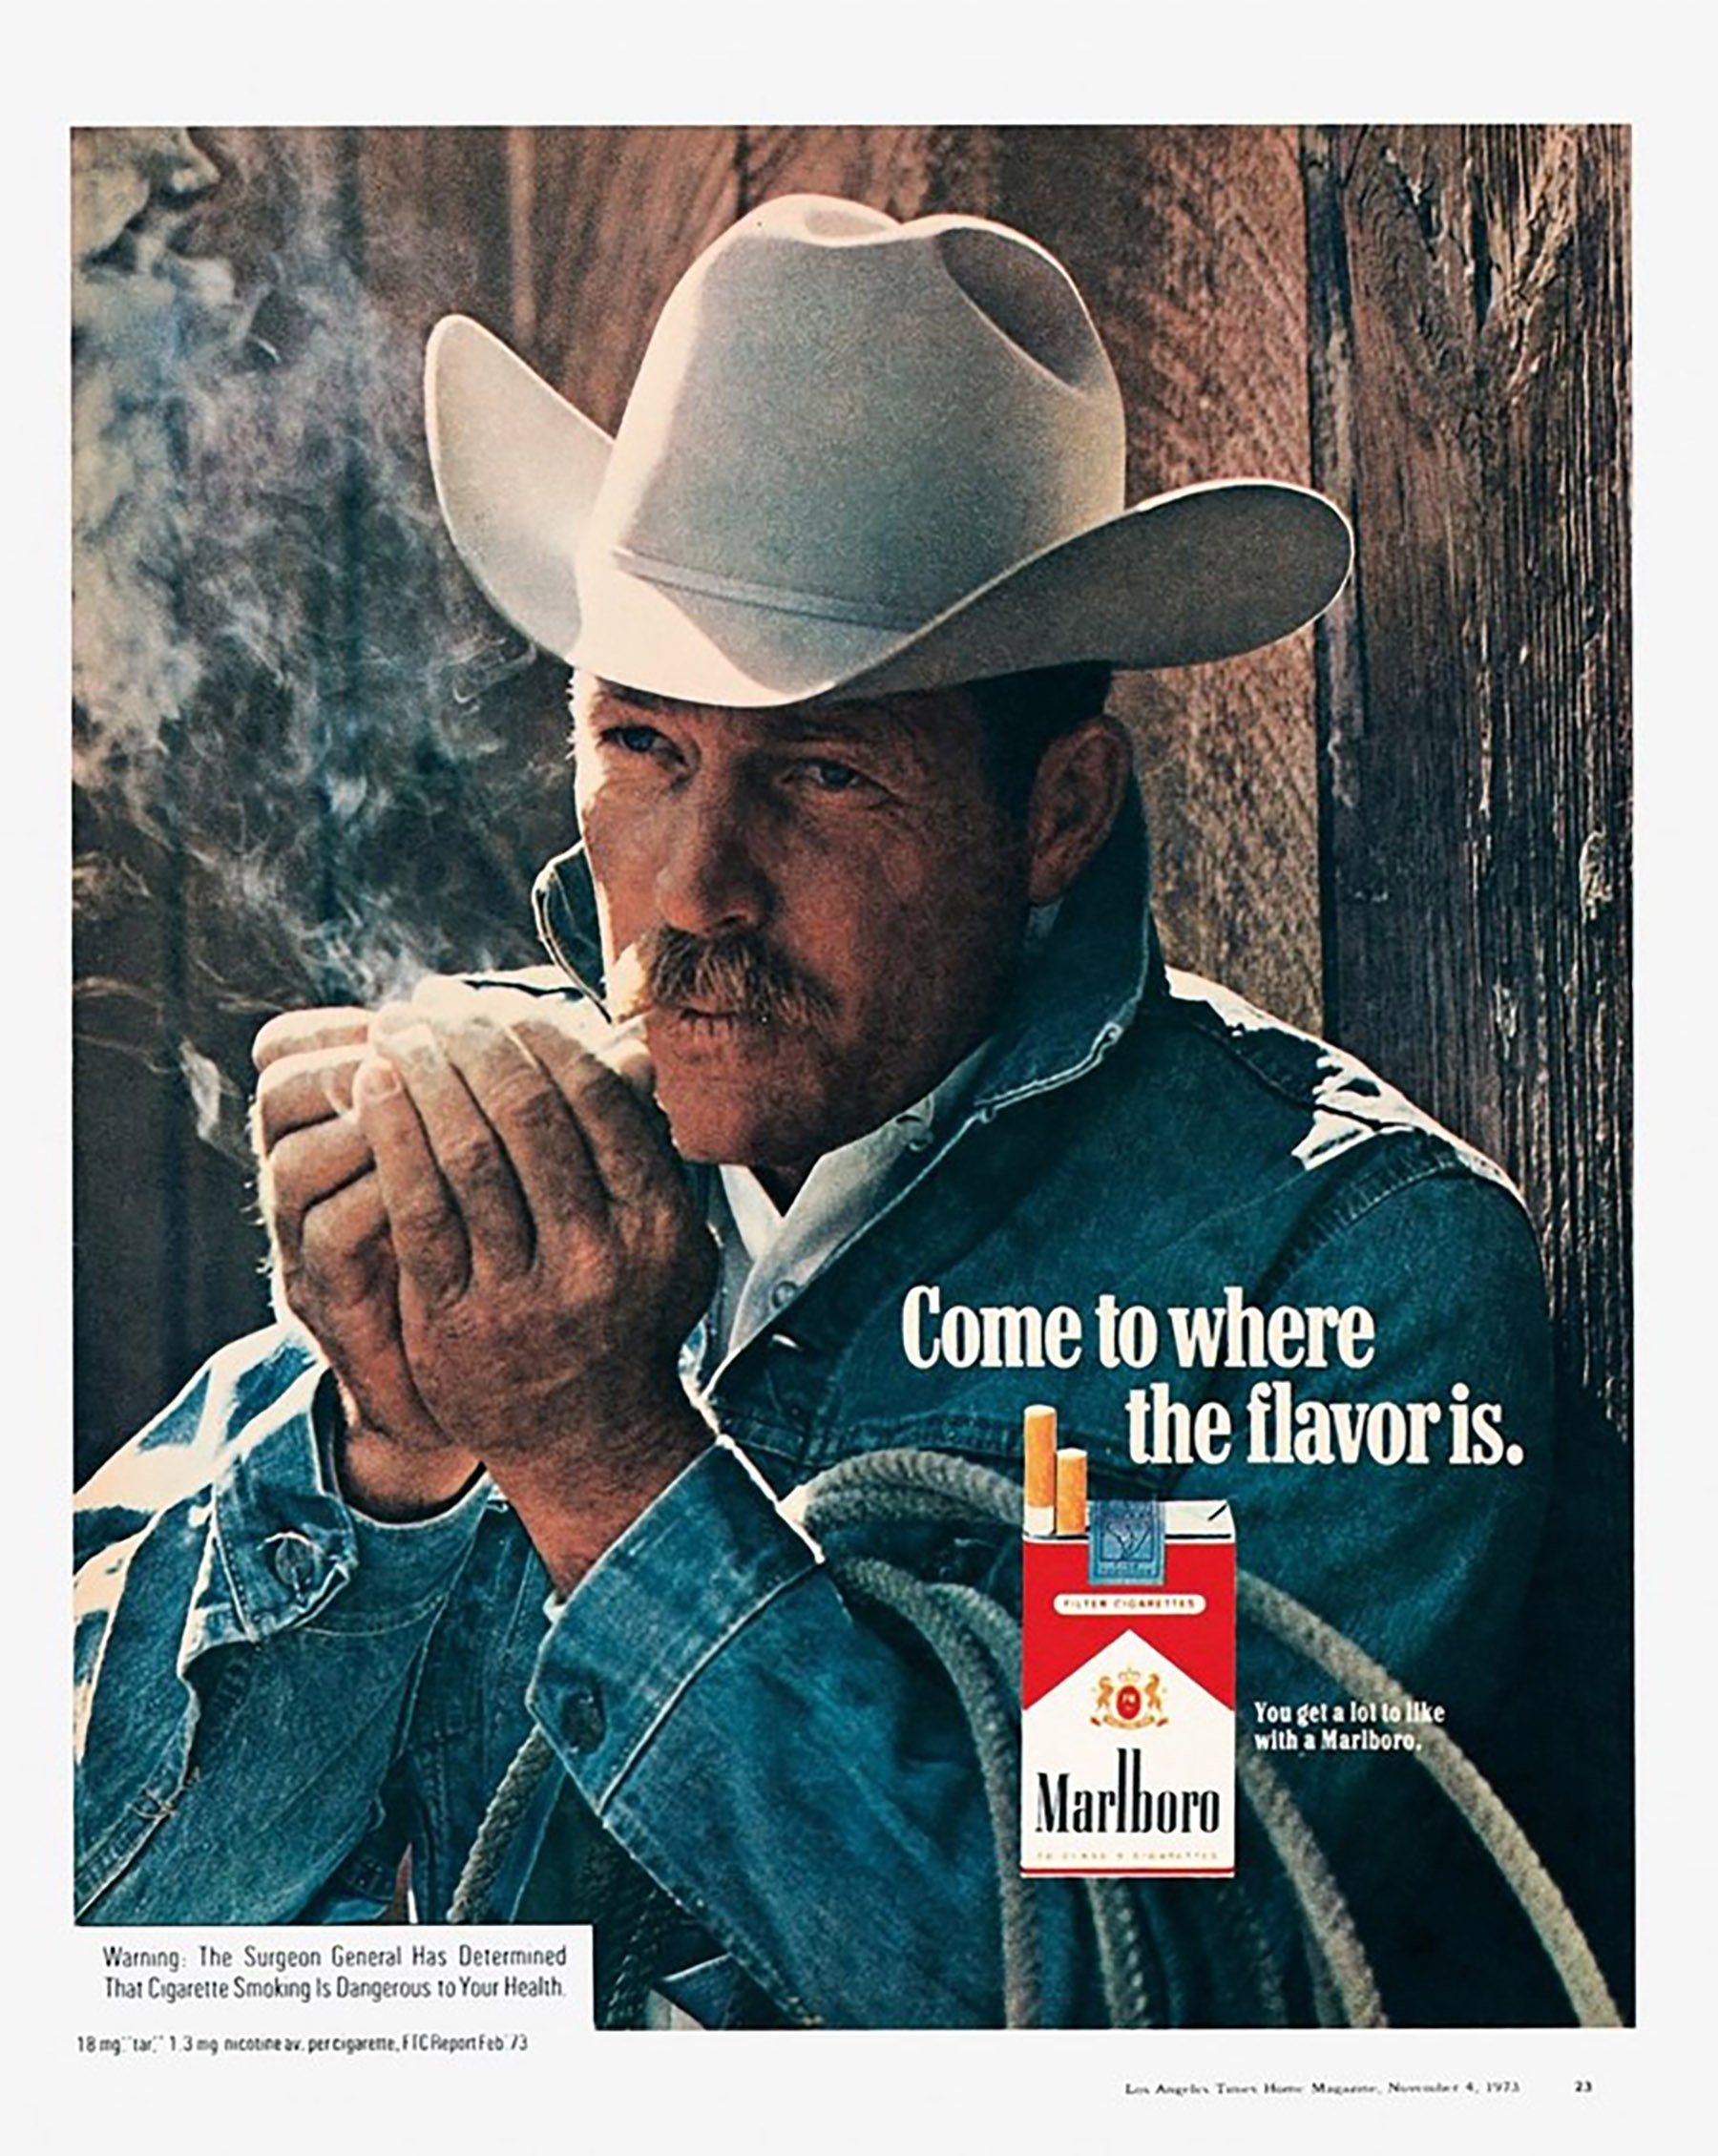 iGNANT-Print-Taschen-Alcohol-Tobacco-Ads-004